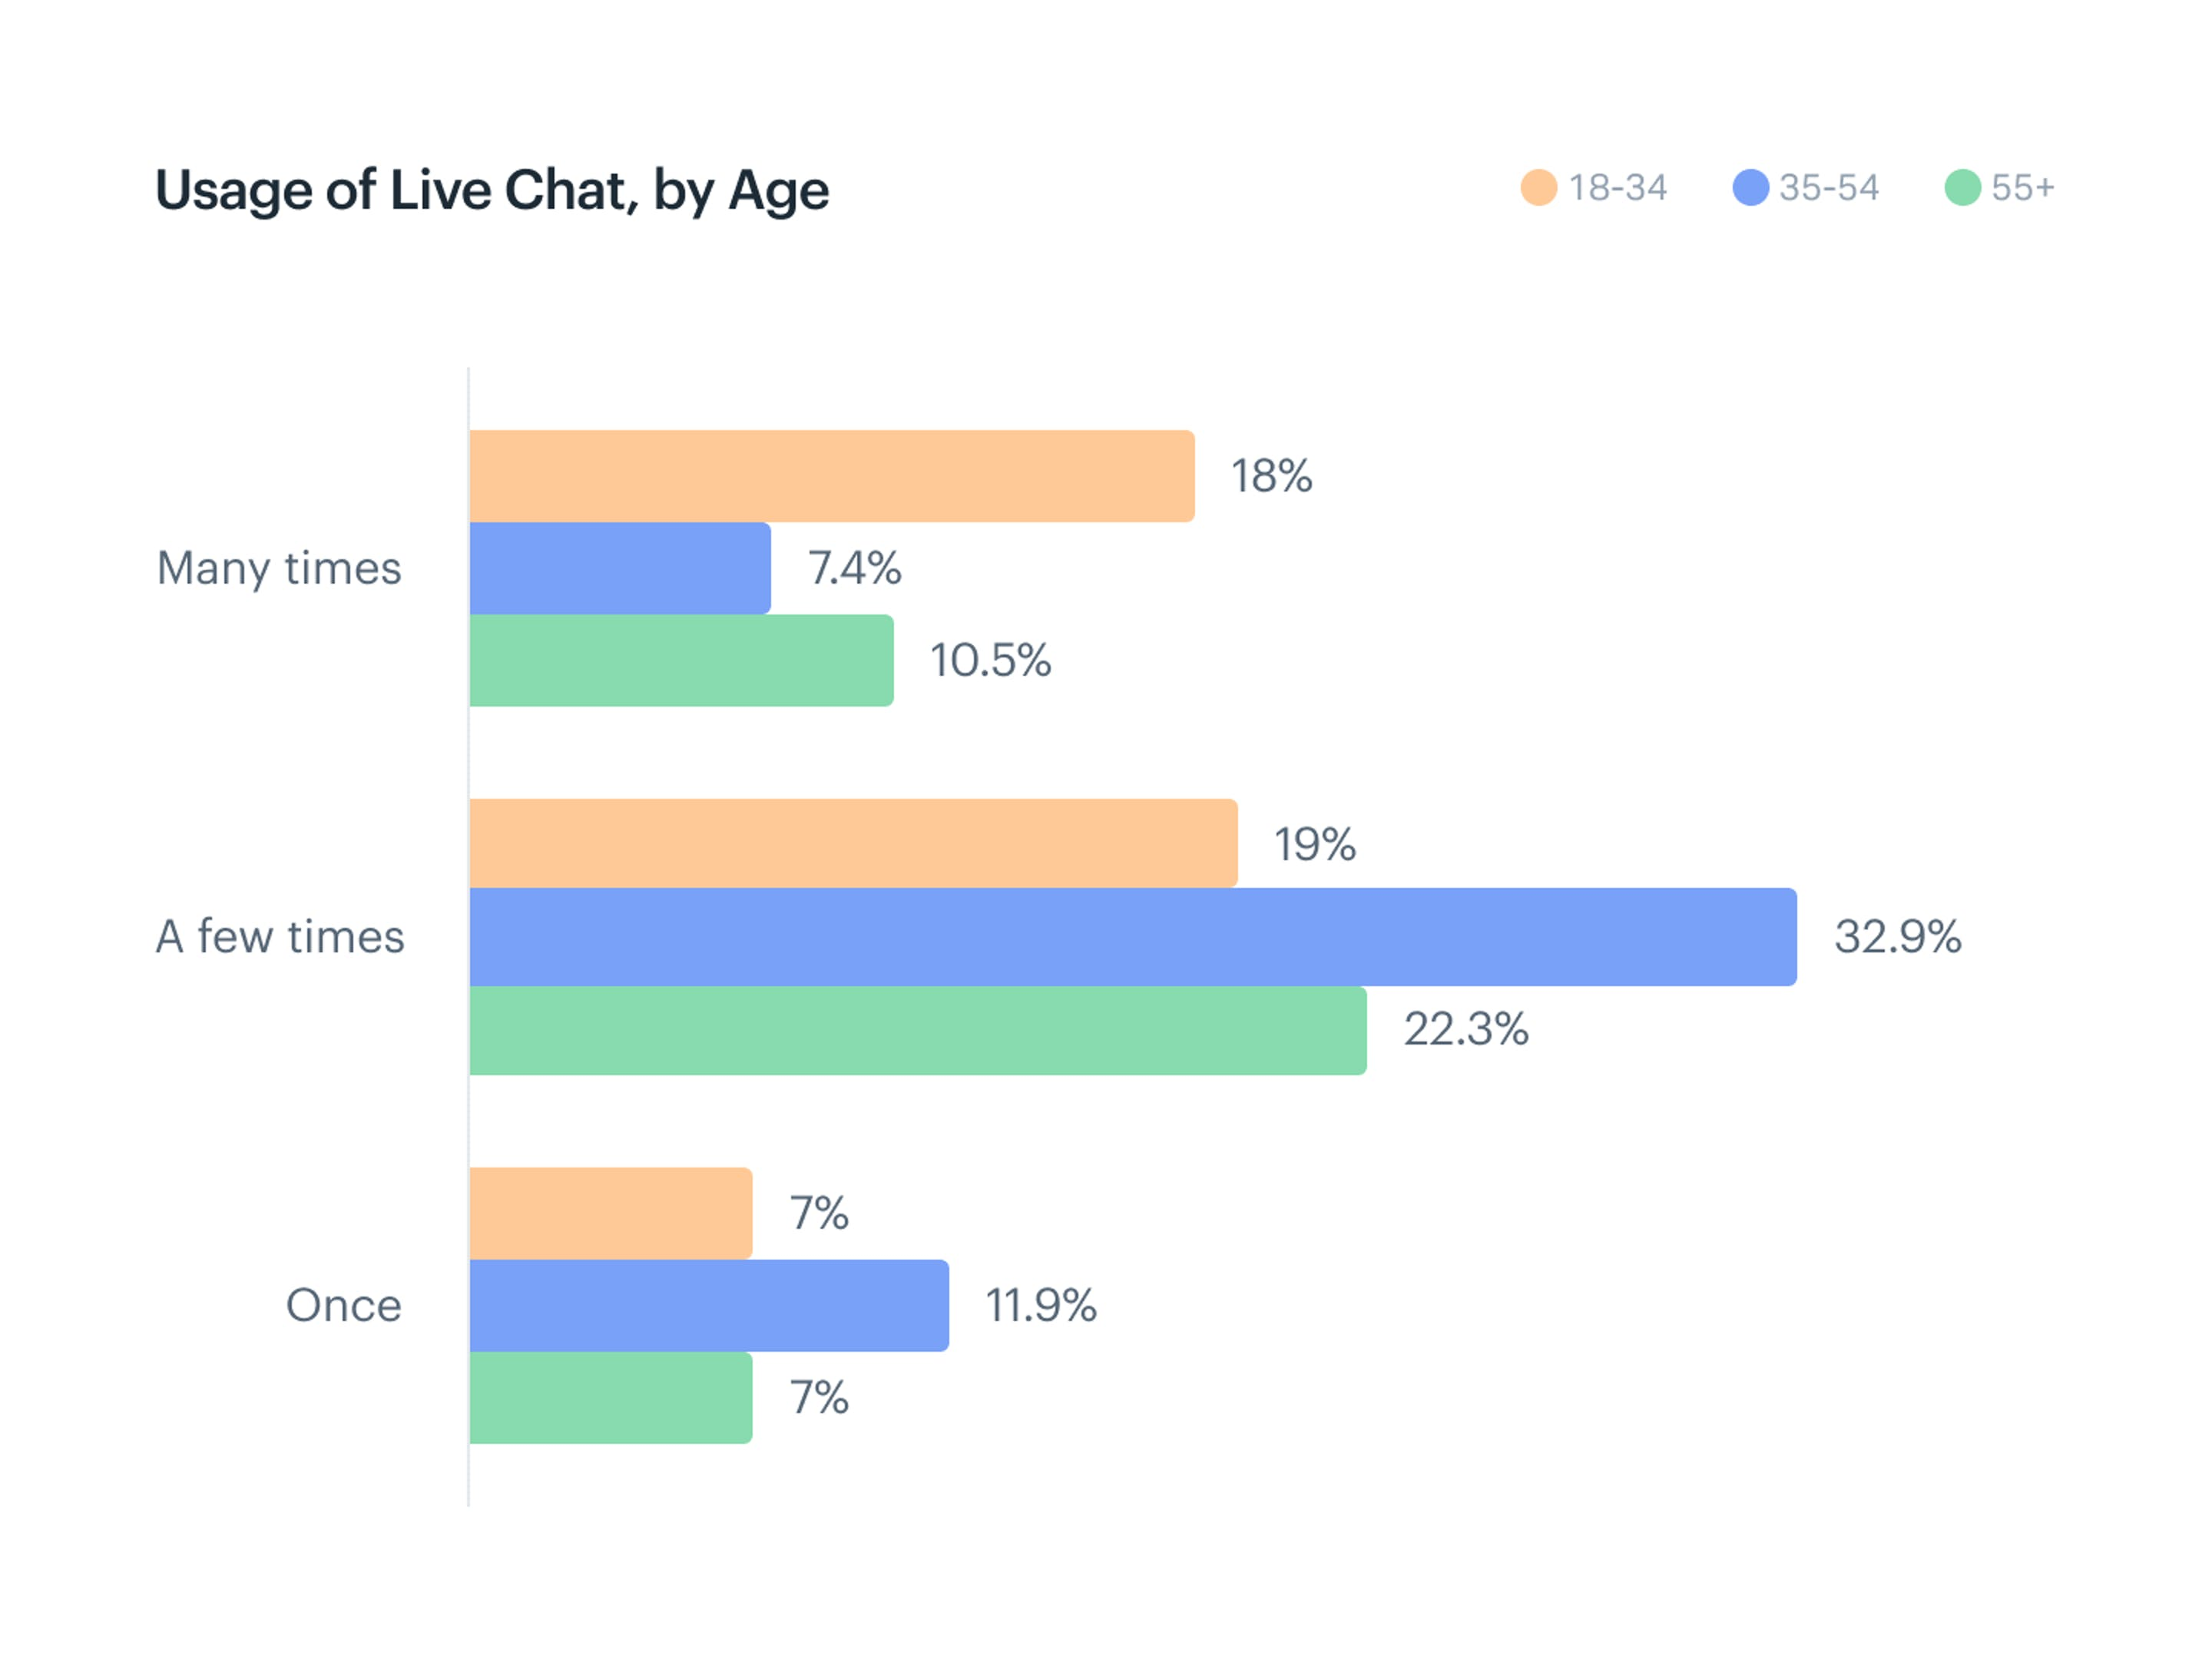 7.4% of people in age groups 35 through 54, and 10.5% of people aged 55 plus, report having used live chat for support many times